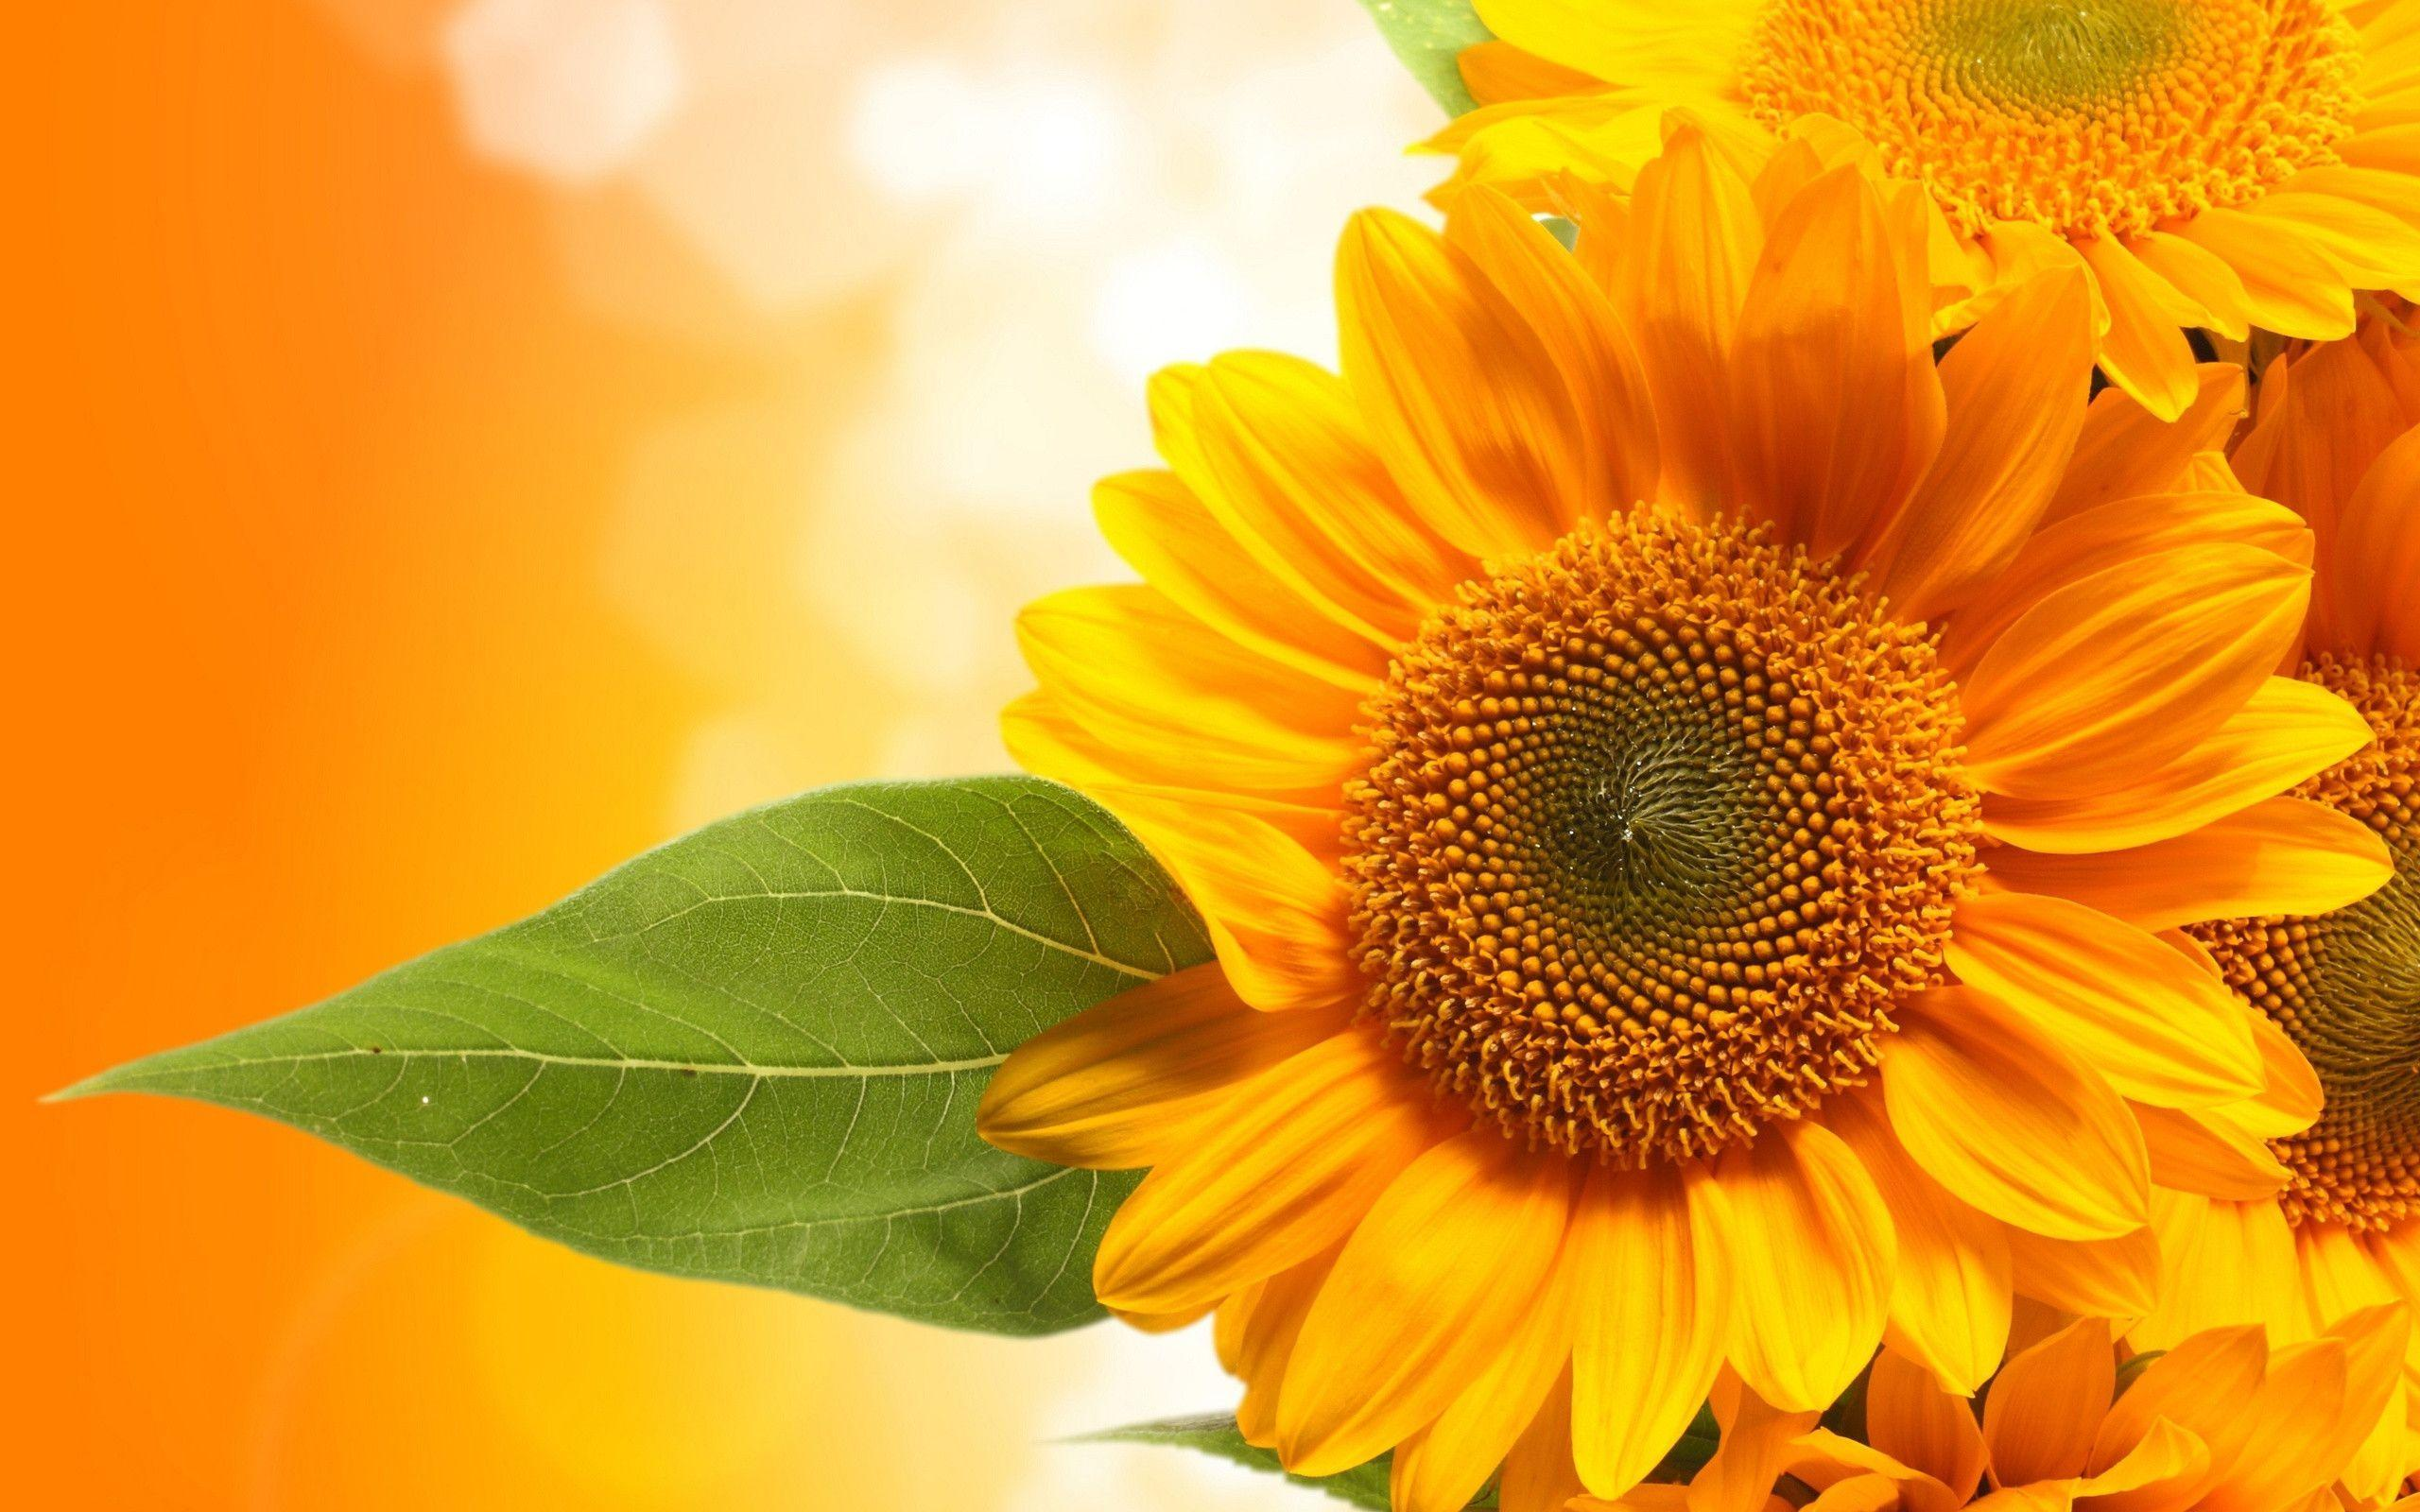 Sunflower Picture Sunflower Images and Wallpapers for Mac PC